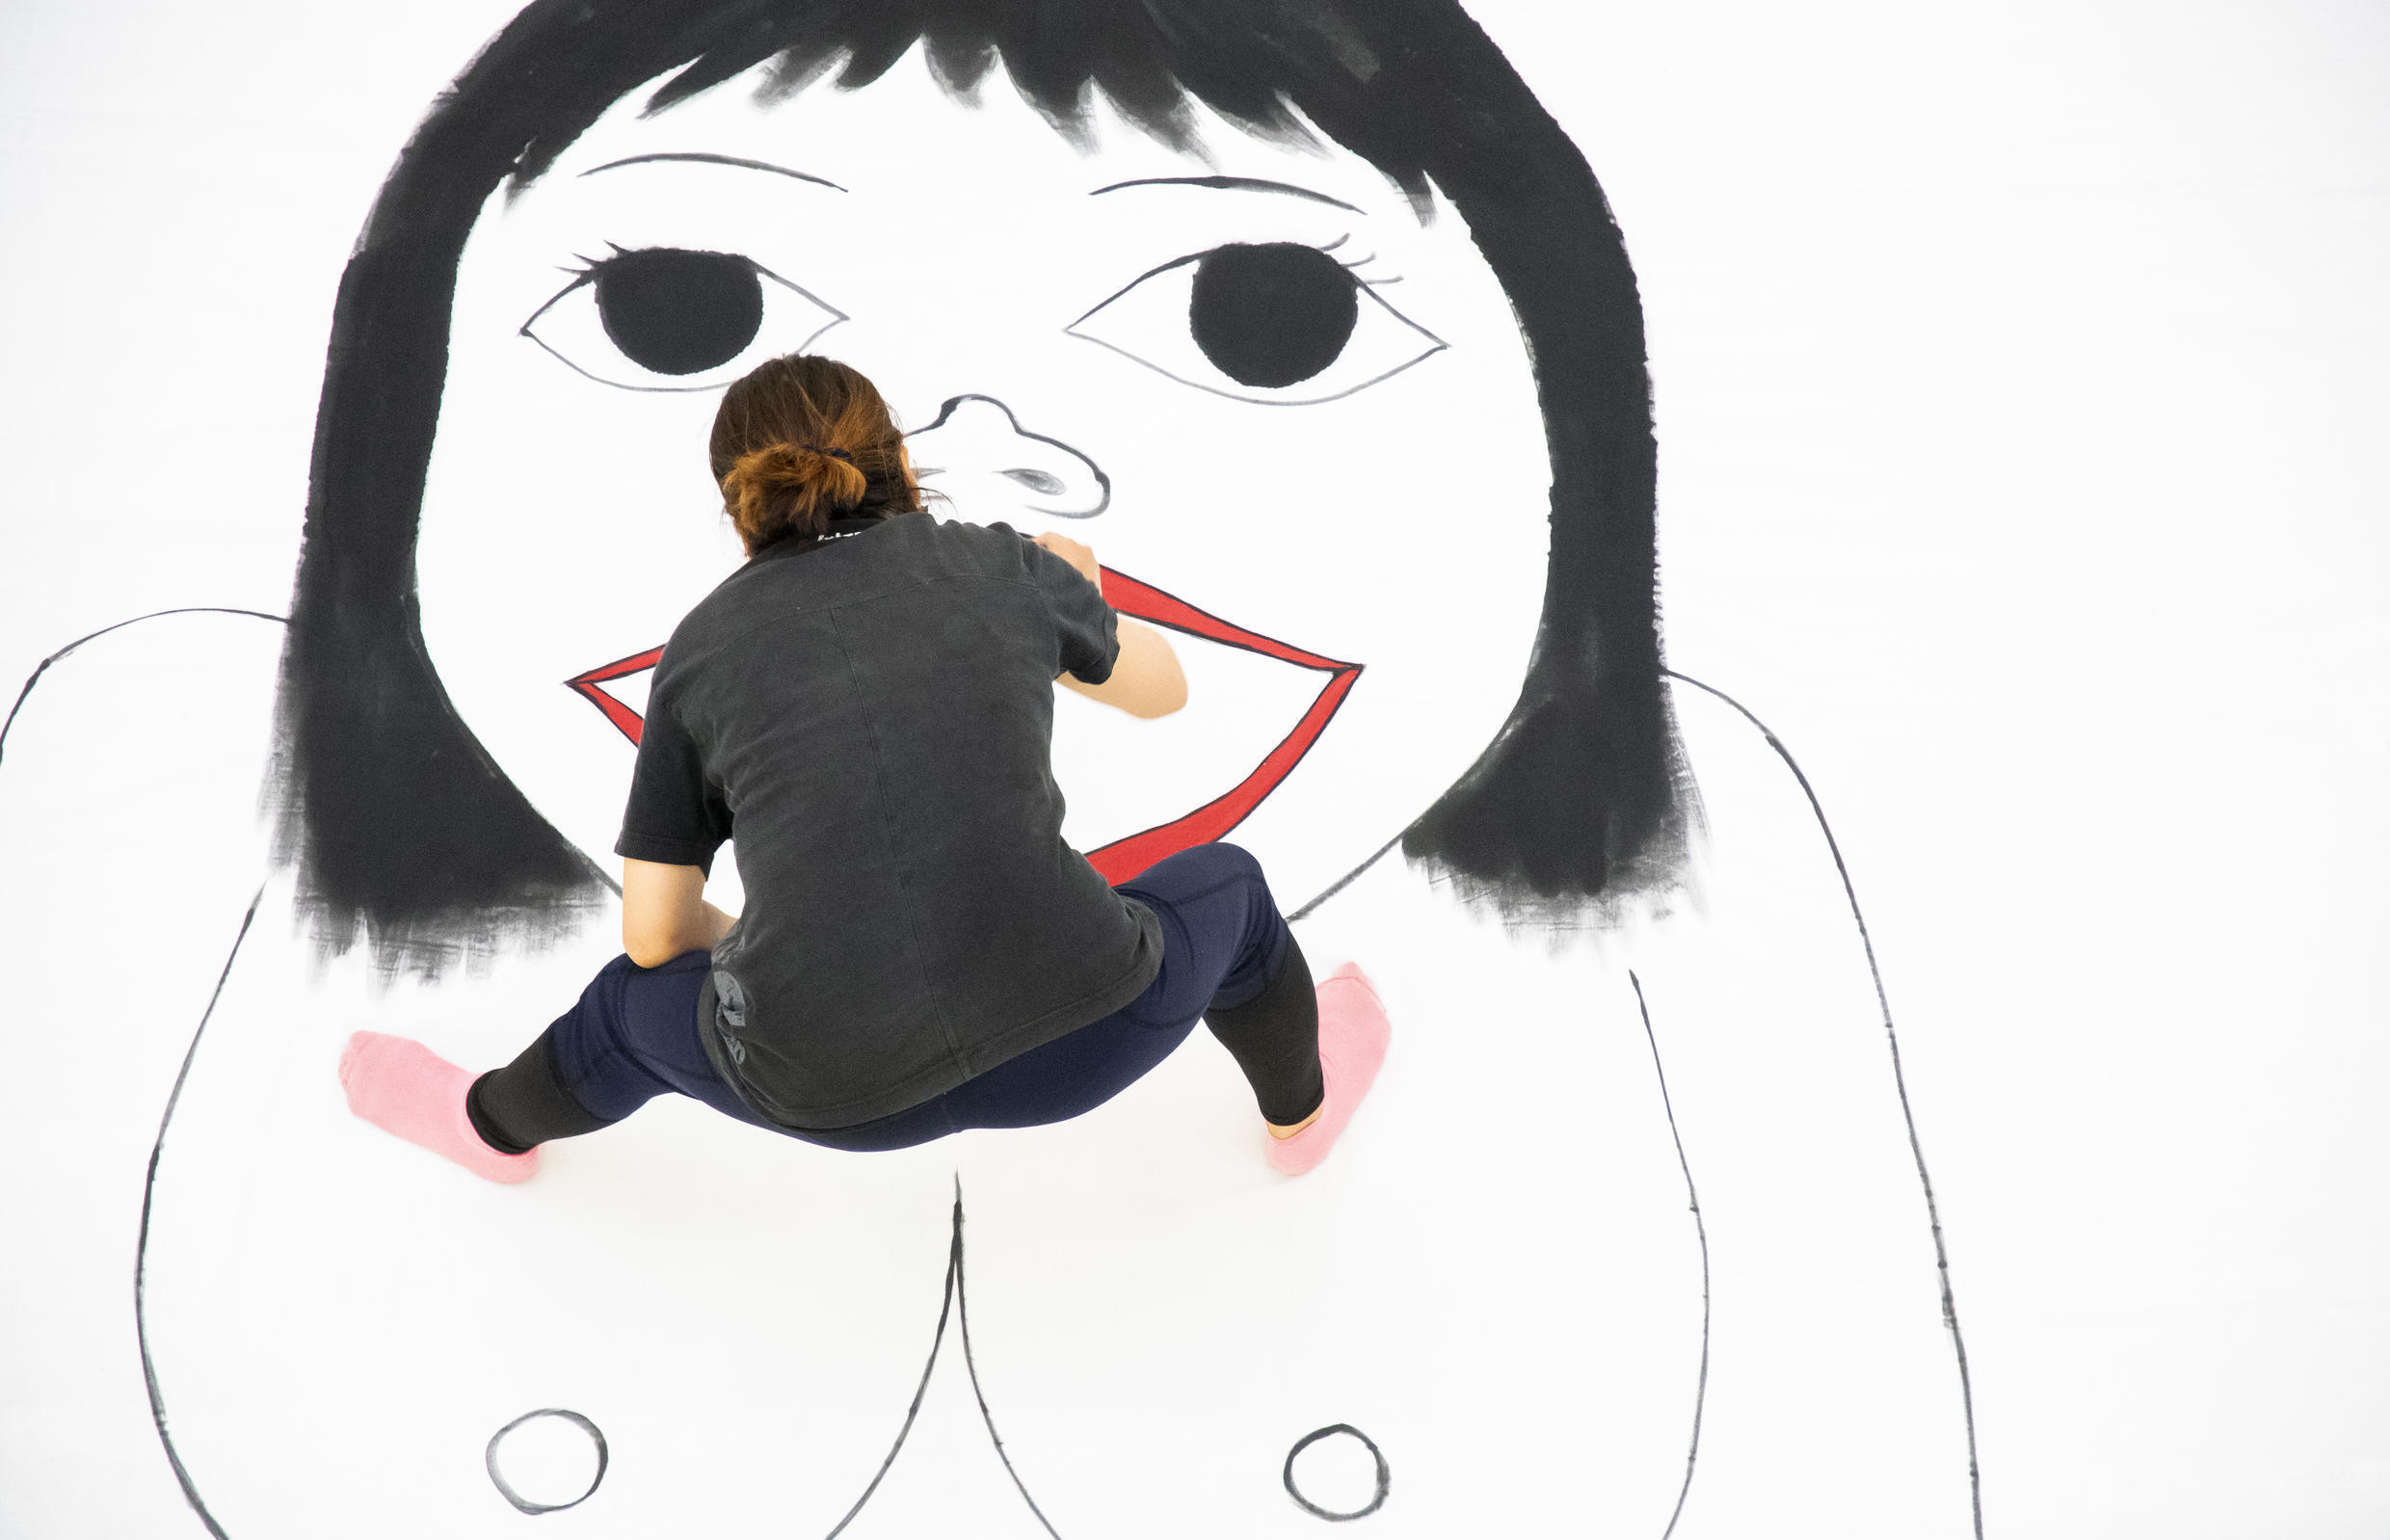 Artist Kubra Khademi from Afghanistan completes one of her portraits in the Visions of Exile Festival in Paris